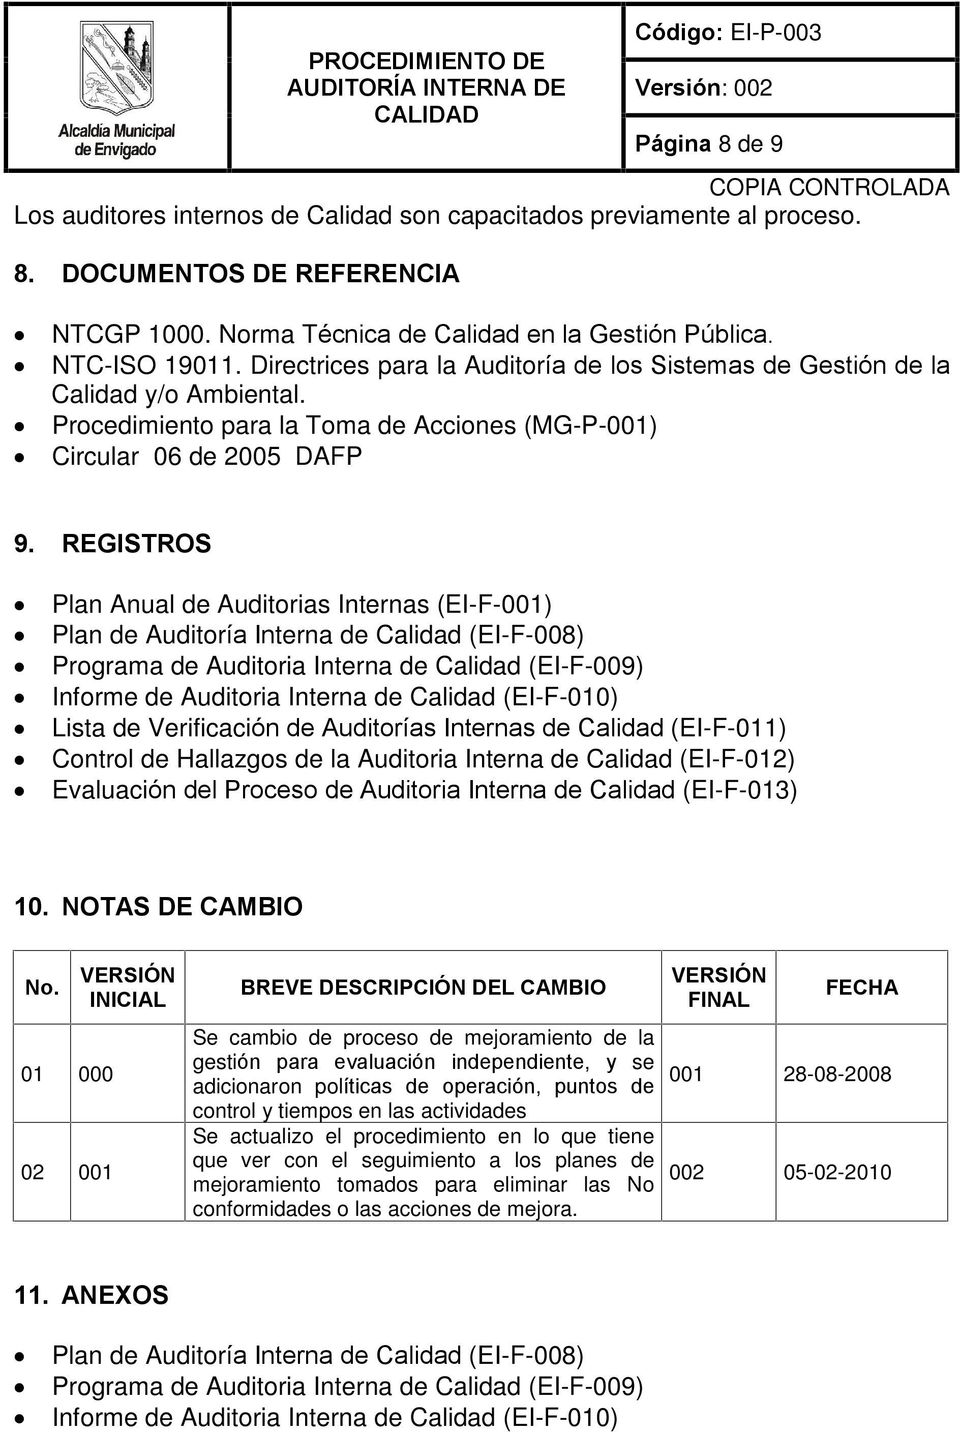 REGISTROS Plan Anual de Auditorias Internas (EI-F-001) Plan de Auditoría Interna de Calidad (EI-F-008) Programa de Auditoria Interna de Calidad (EI-F-009) Informe de Auditoria Interna de Calidad